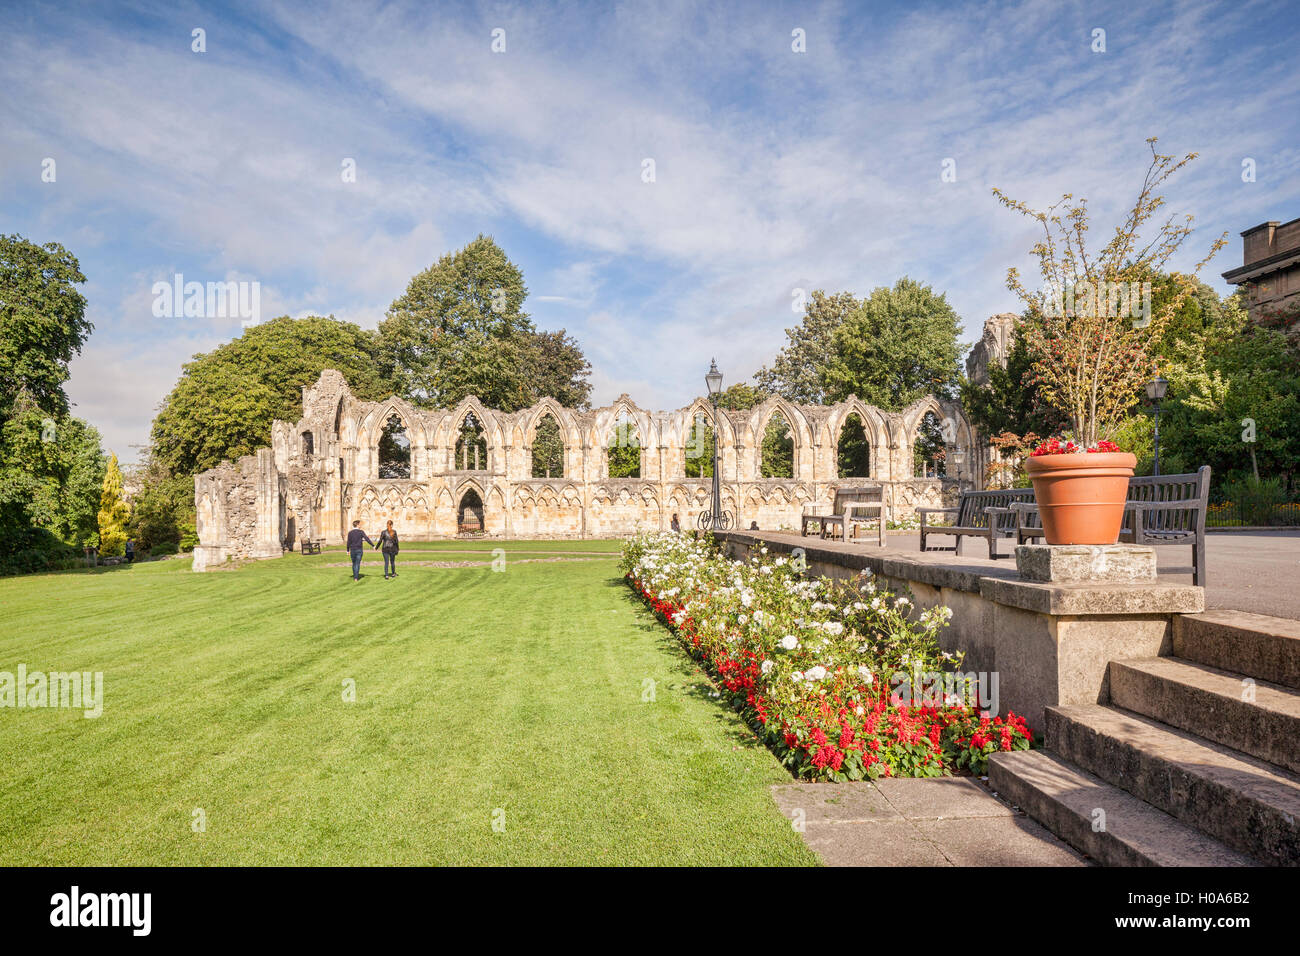 St Mary's Abbey, York, North Yorkshire, England, UK - Stock Image